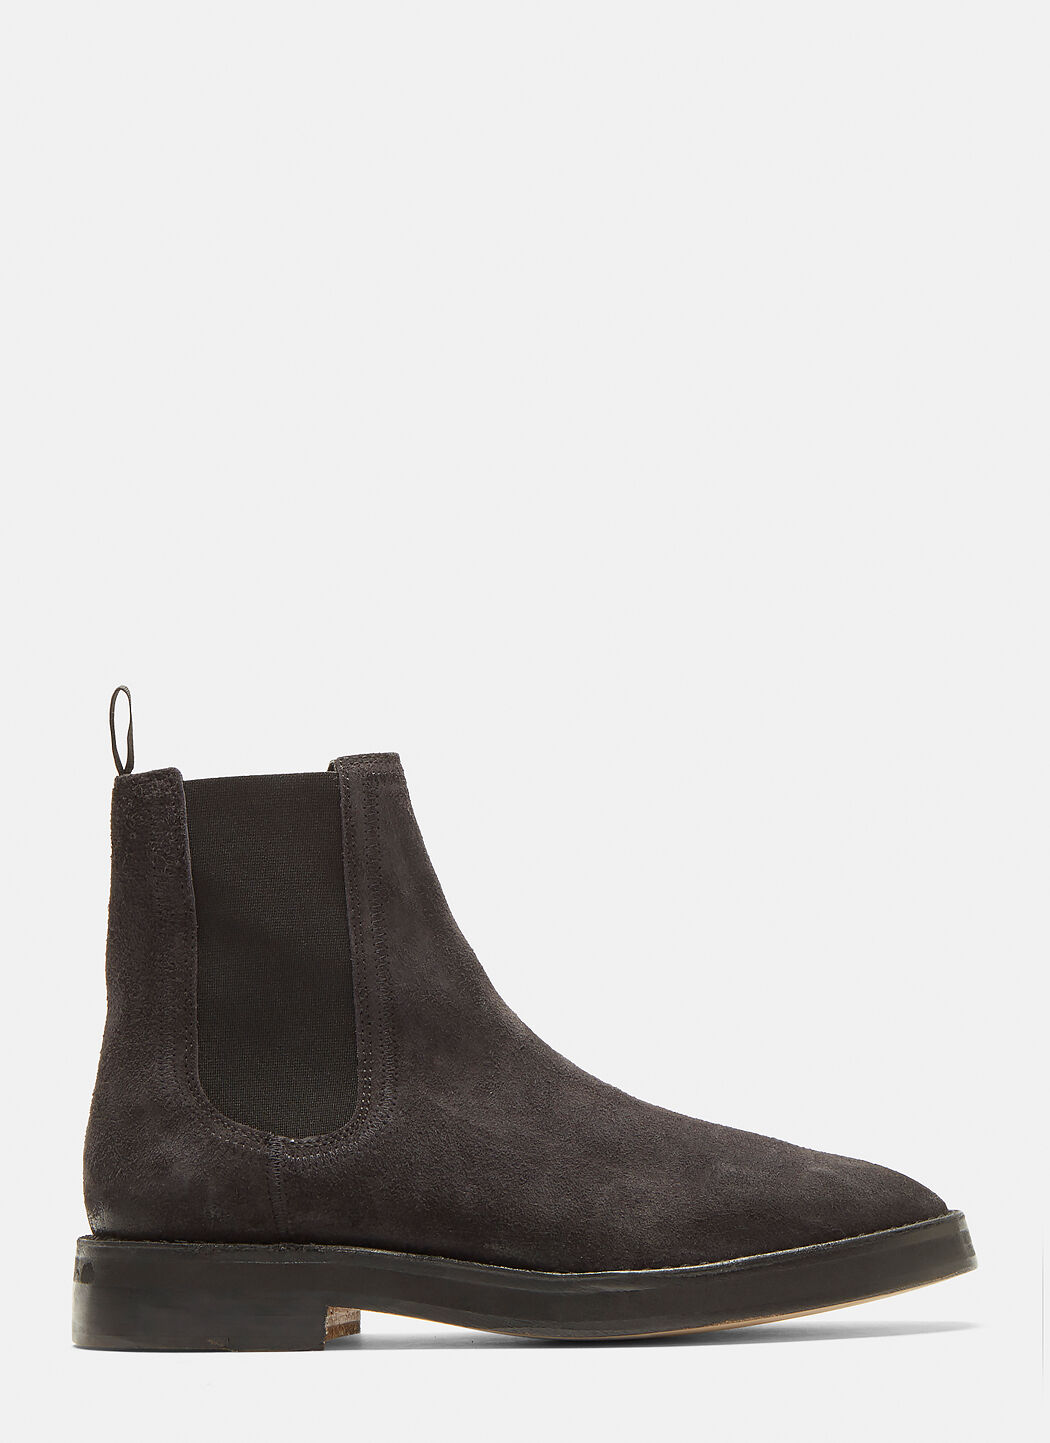 88d03671a YEEZY SHAGGY SUEDE CHELSEA BOOTS IN GREY